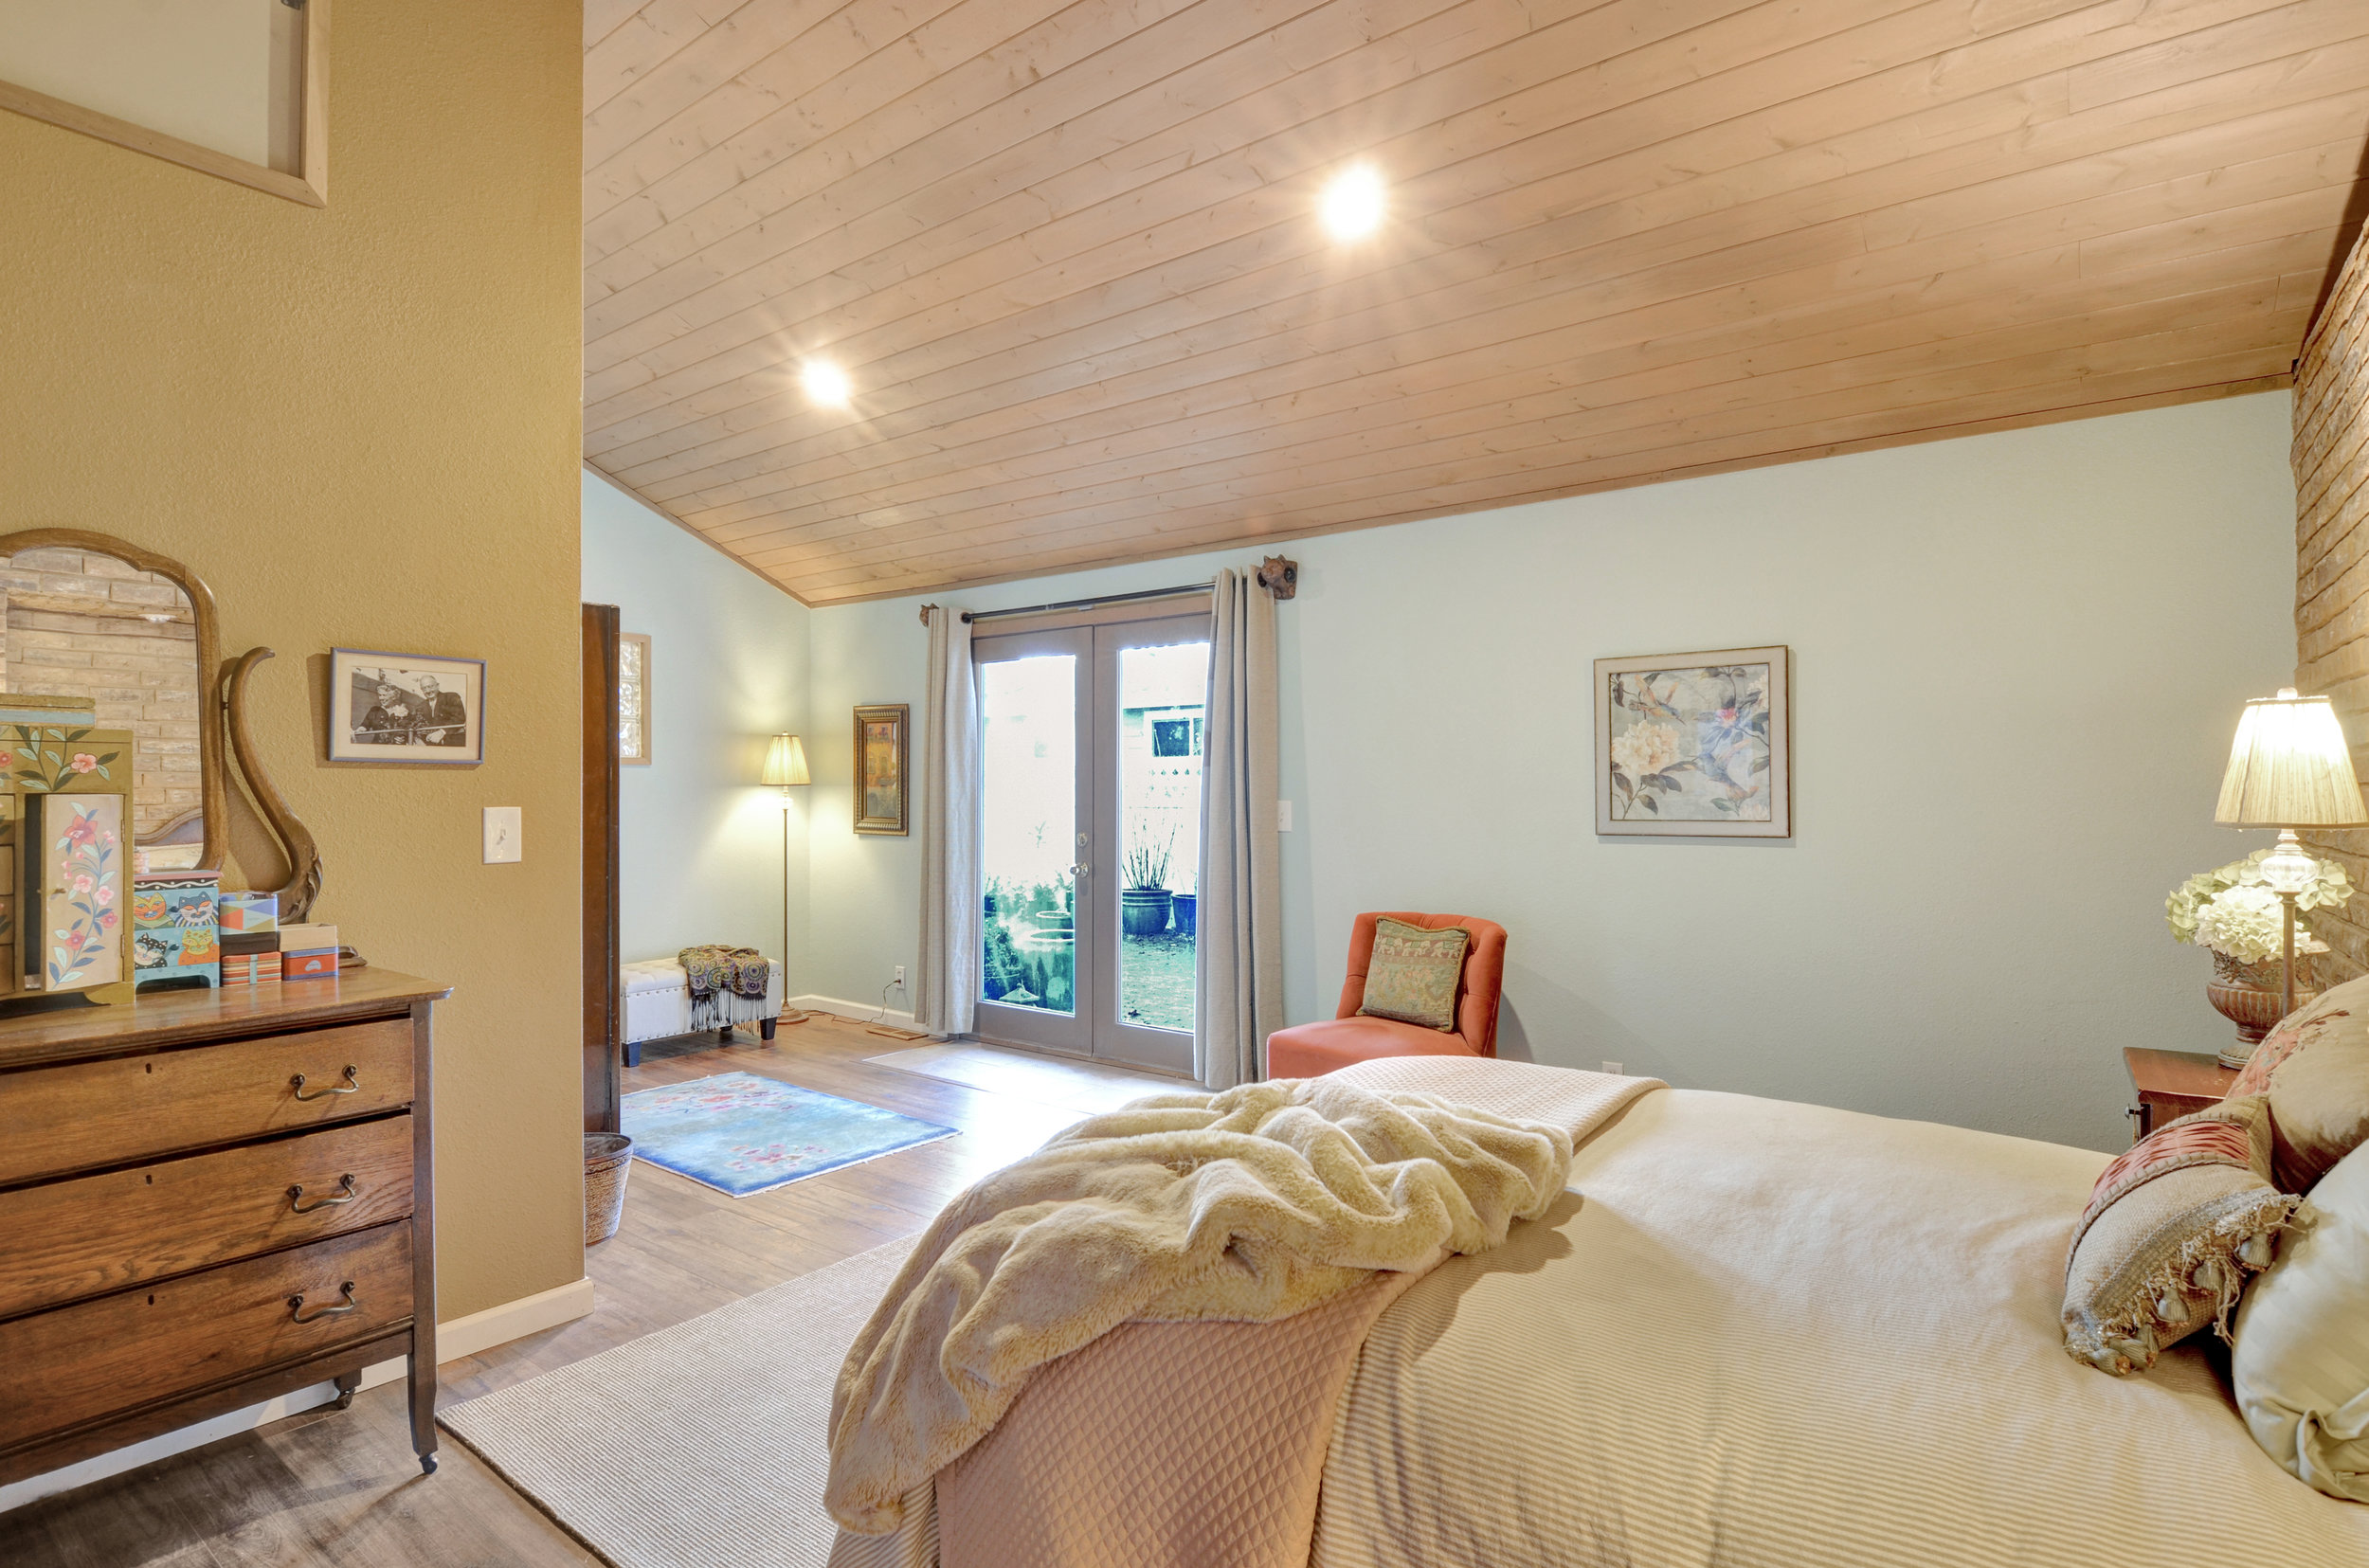 View from the corner of the bedroom to the French doors leading to the fully-fenced back patio.